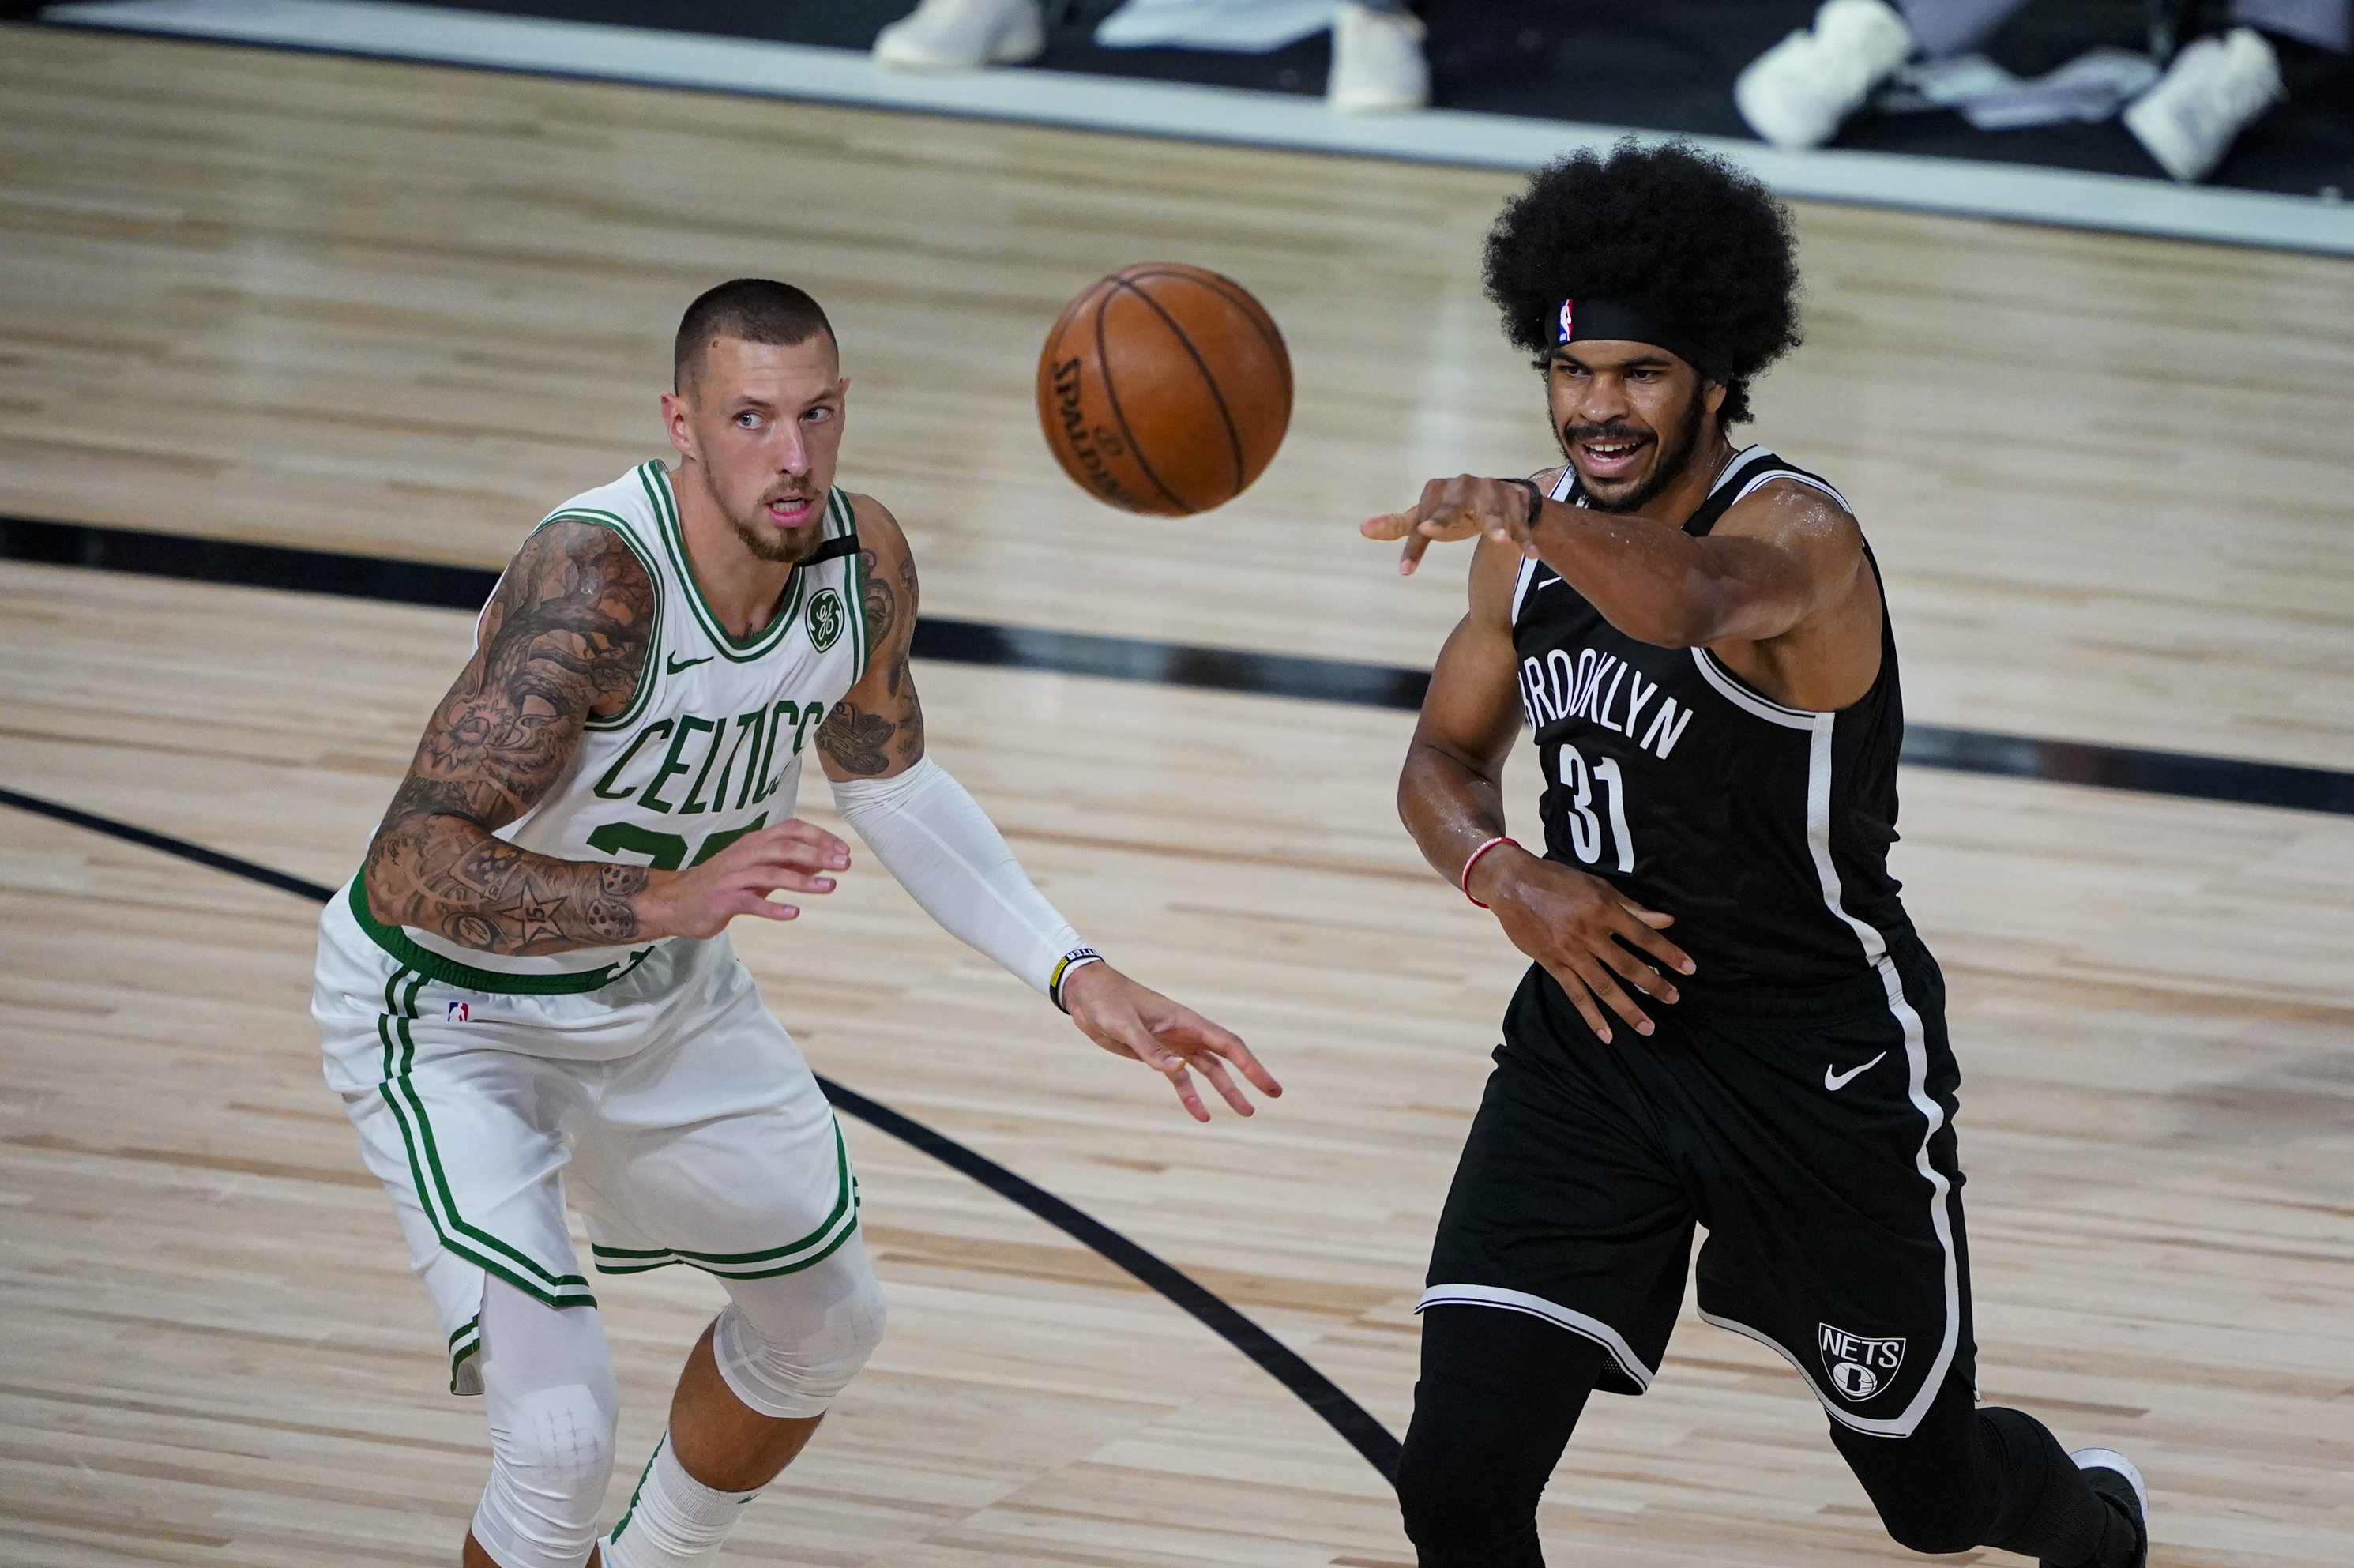 Jarrett Allen of the Brooklyn Nets passes around Daniel Theis of the Boston Celtics during the first half of an NBA basketball game at the ESPN Wide World Of Sports Complex on August 5, 2020 in Lake Buena Vista, Florida.